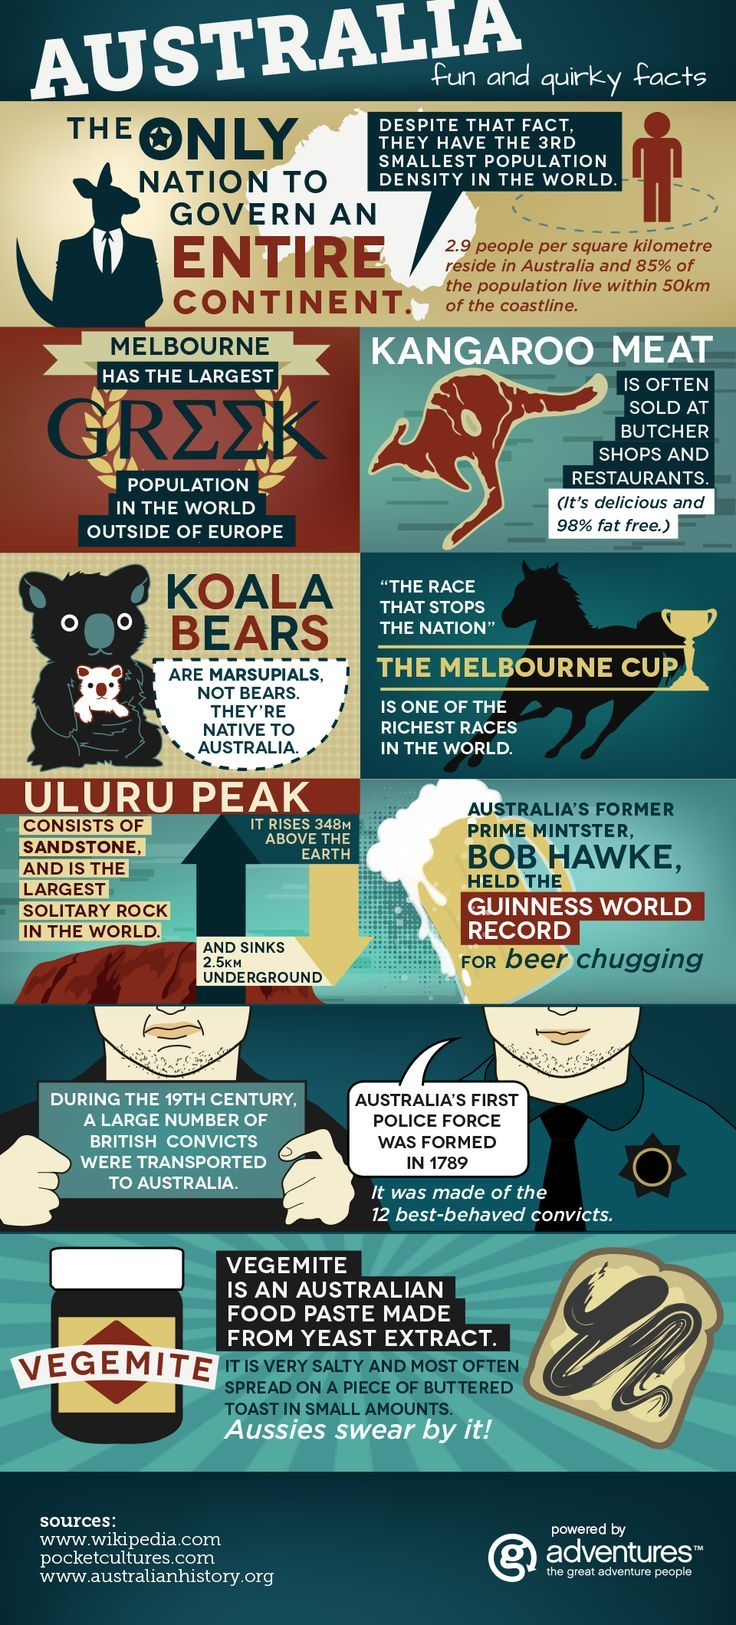 Know Australia: Did you know these interesting facts about Australia?